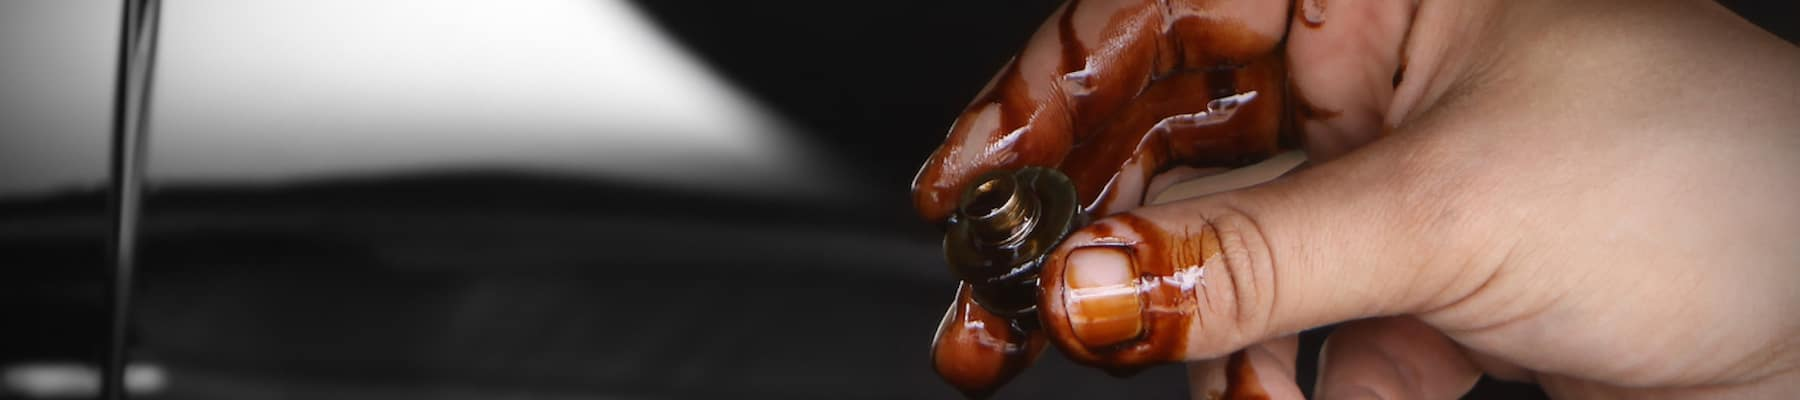 Close up of hand inspecting oil